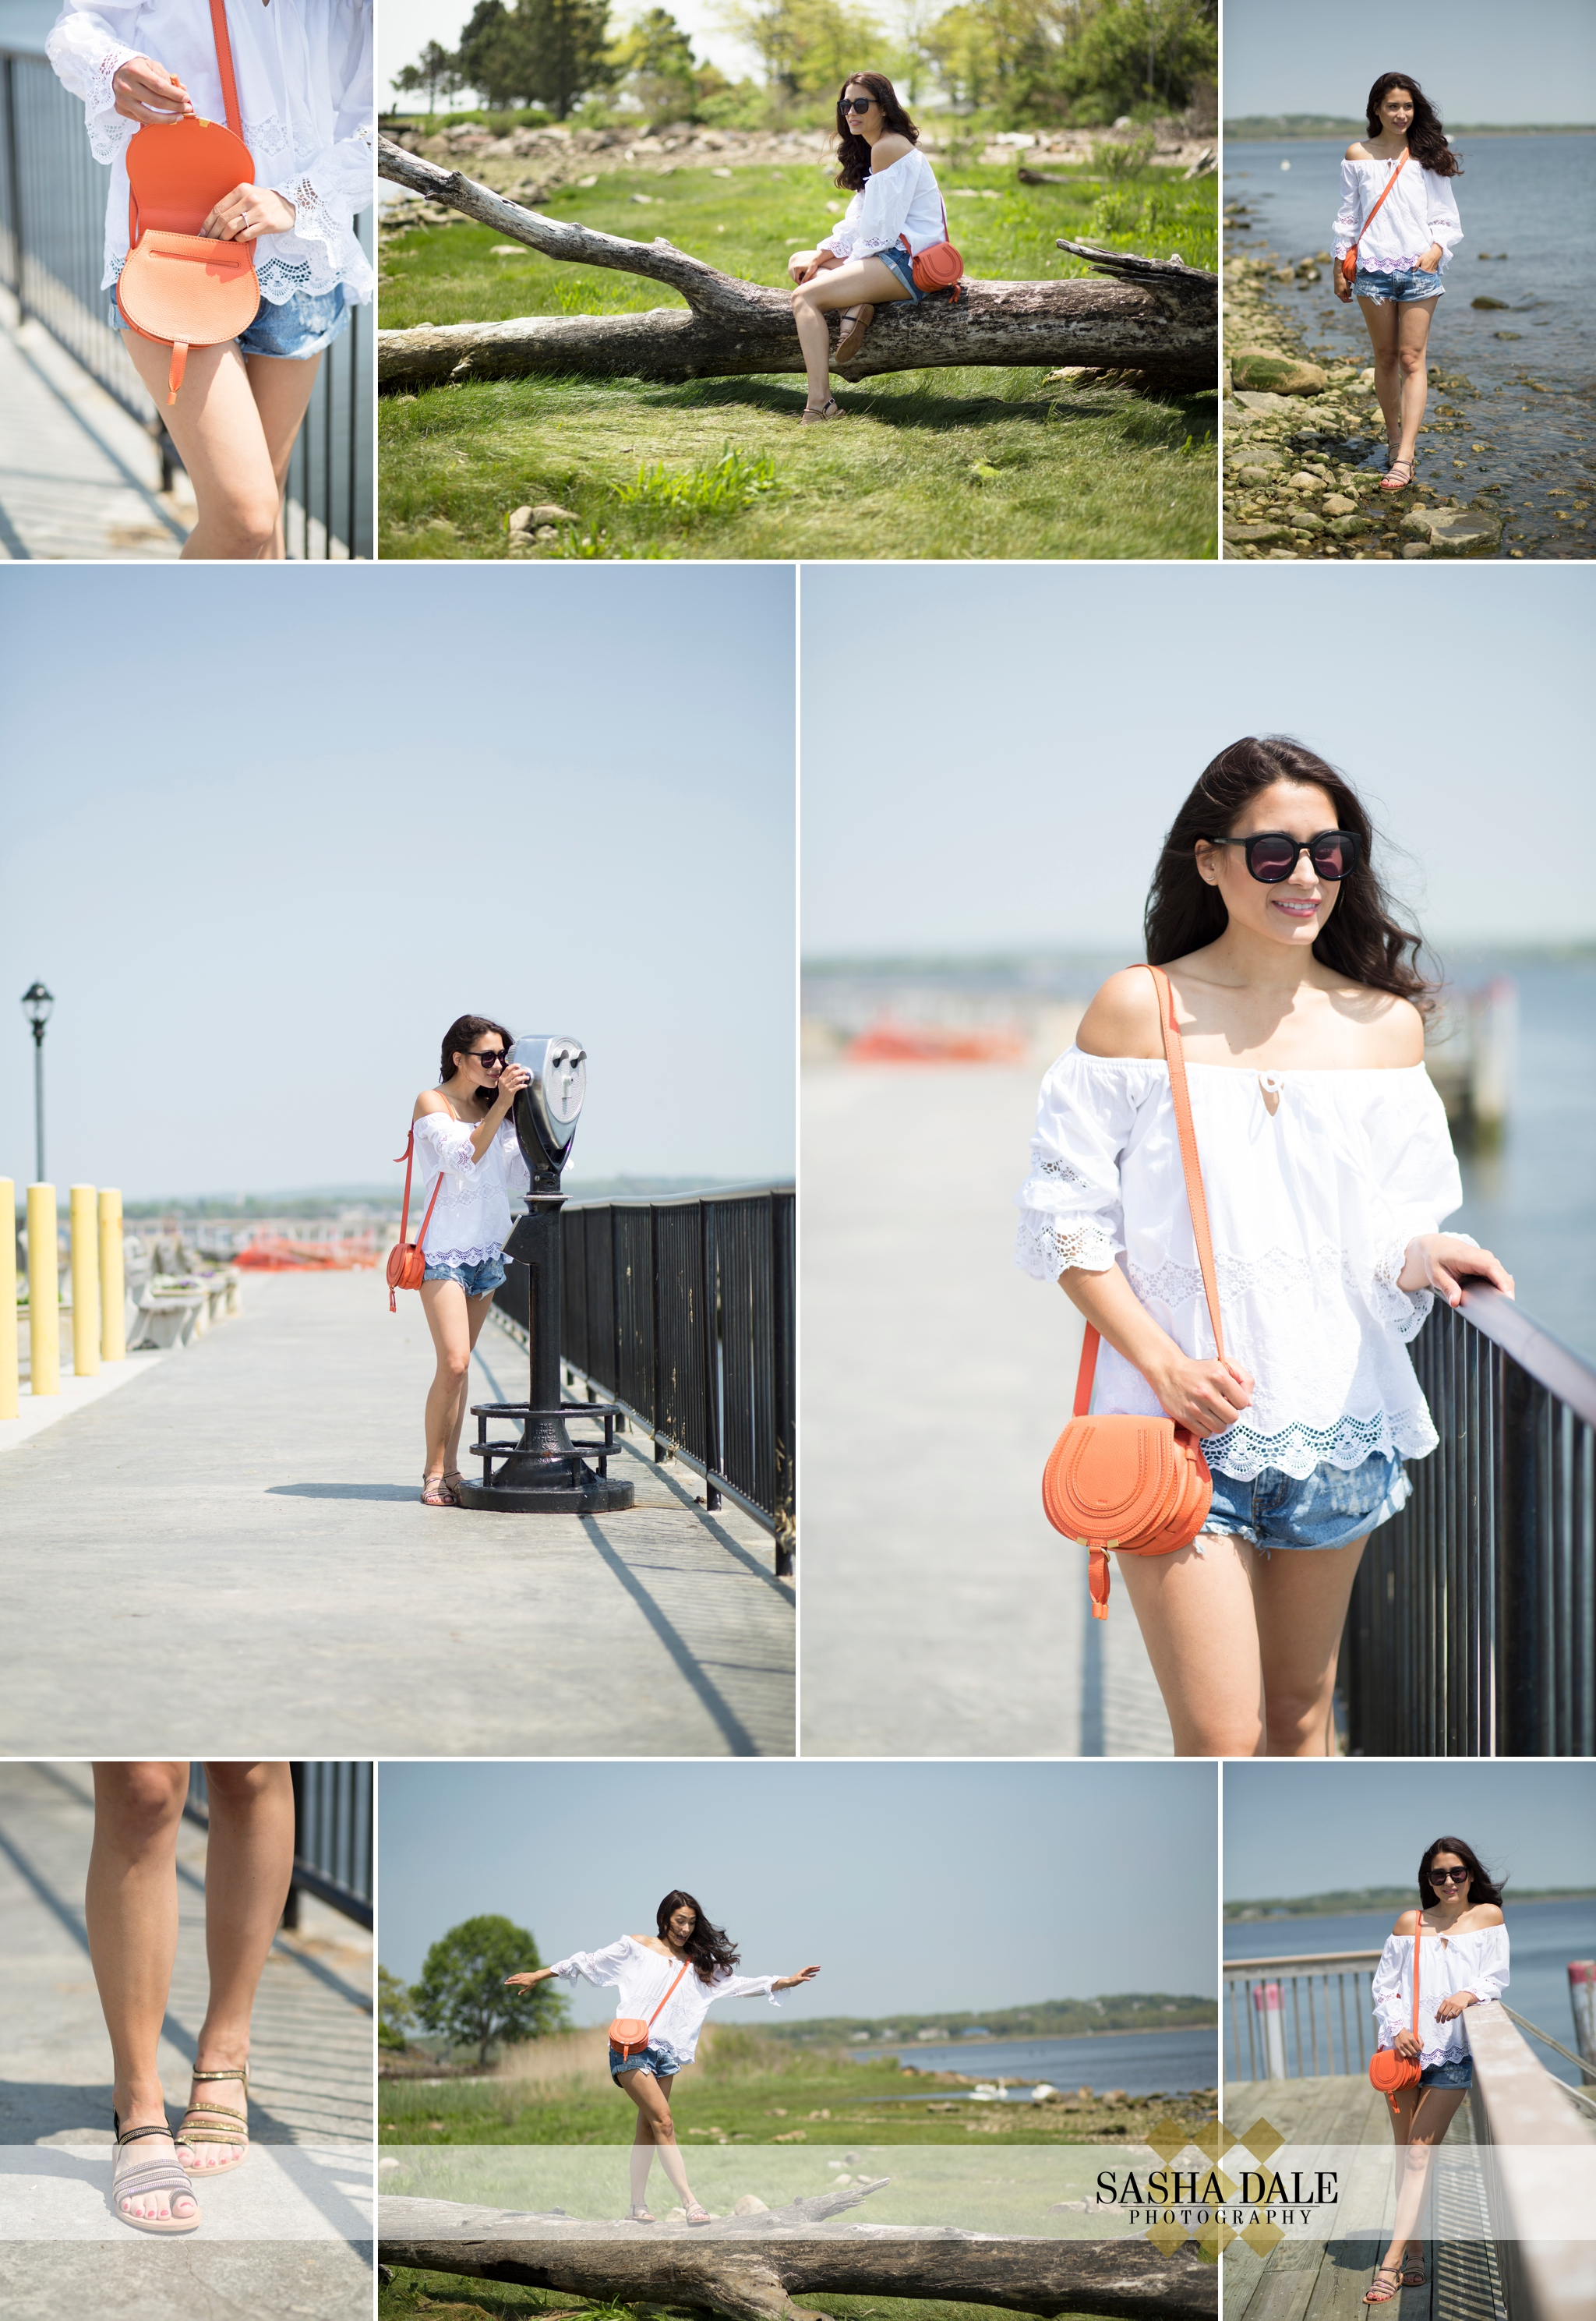 fashion blogger, beach, bathing suit, red dress, white top, Old Saybrook CT, Jean Shorts, Summer, Beach Bag, Poms